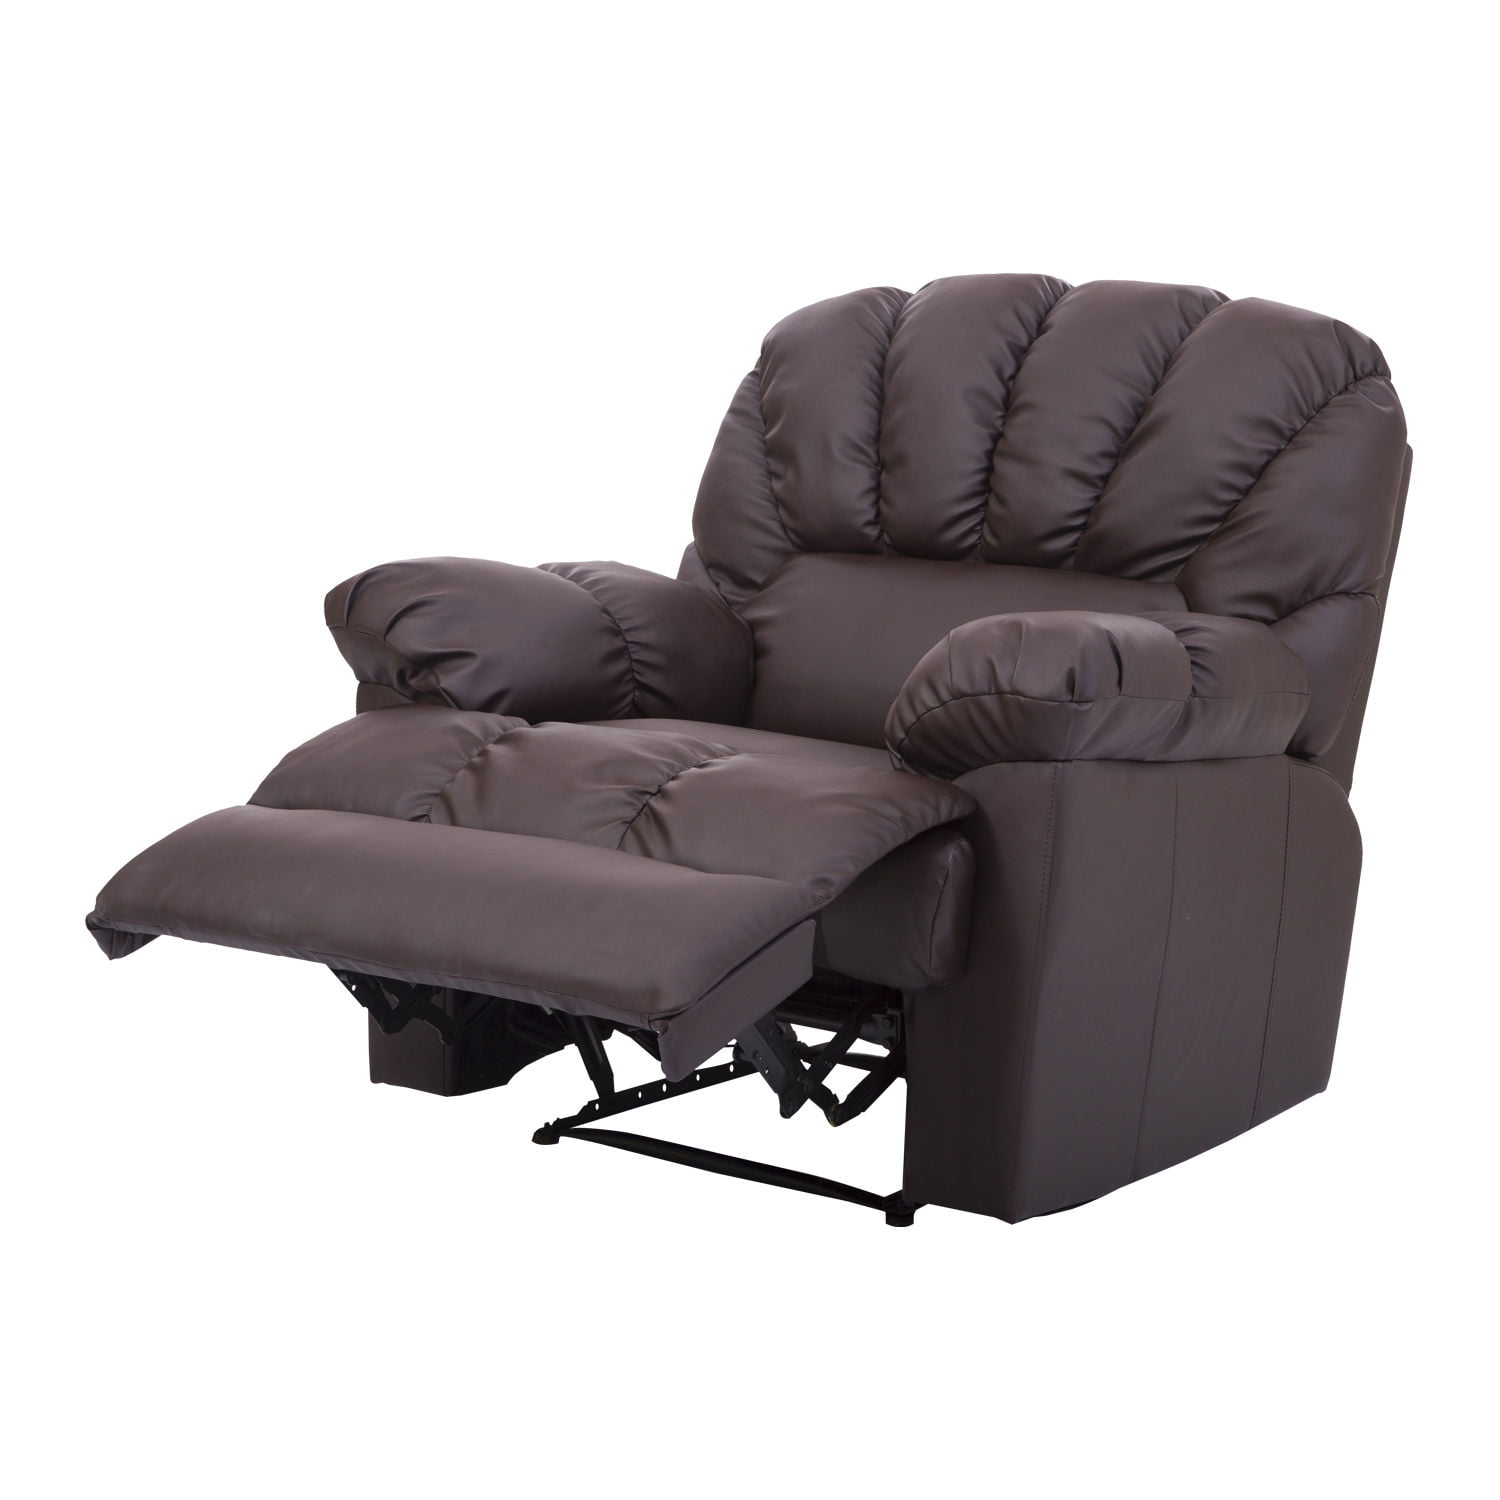 Hom PU Leather Vibrating Massage Sofa Chair Recliner Brown